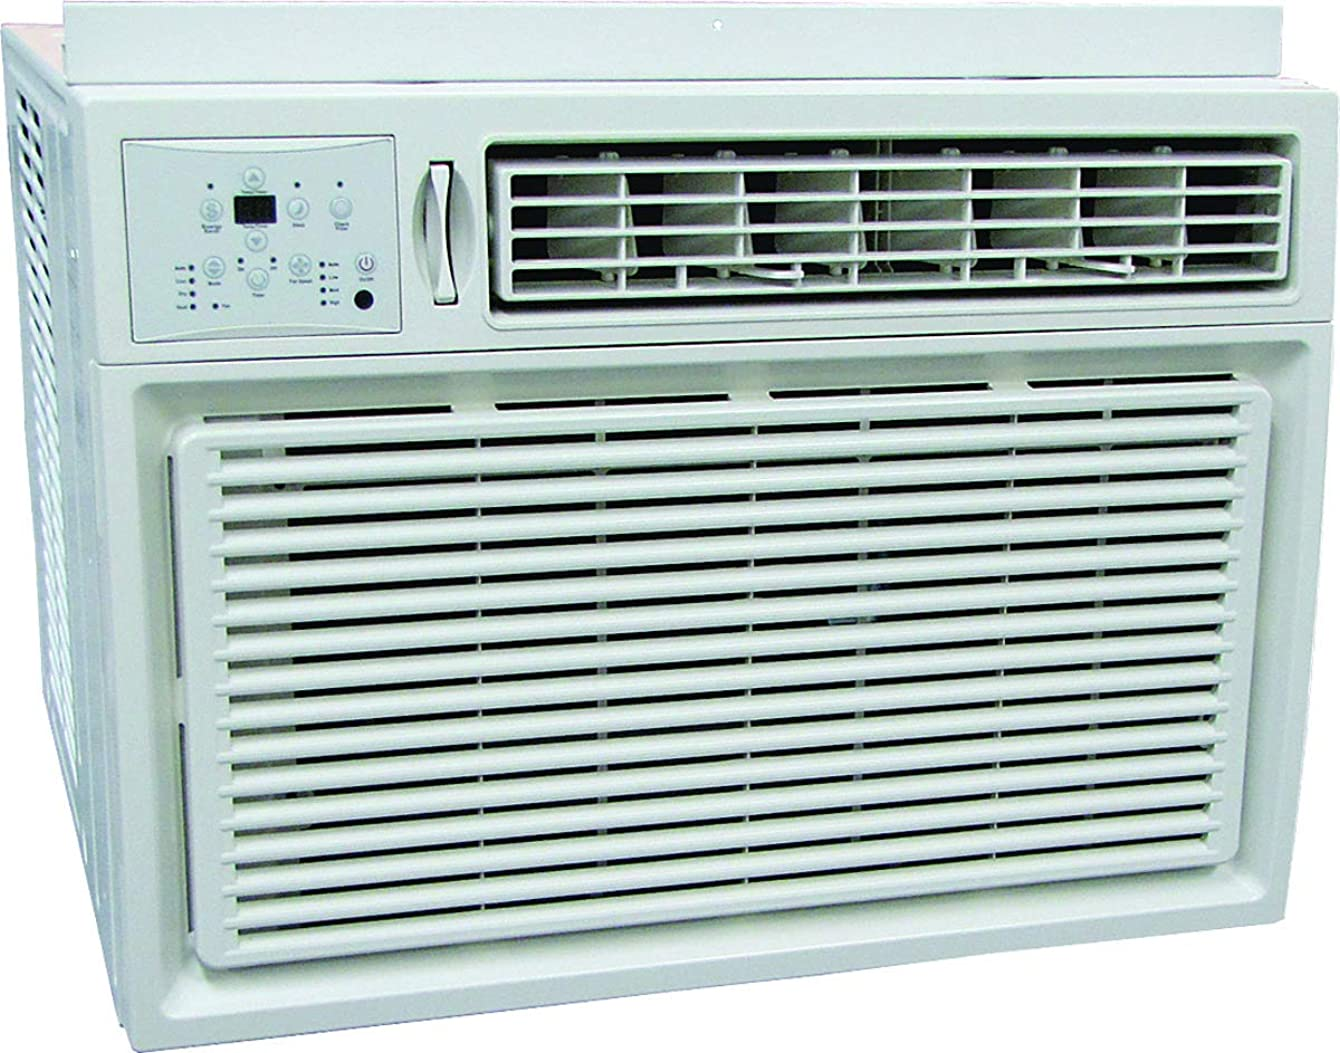 HEAT CONTROLLER REG-81M Comfort 4-Way Room Air Conditioner with Electric Heat, 8000 Btuh, 277 Cfm, 300-350 Sq-Ft, 1.48 Pt/Hr